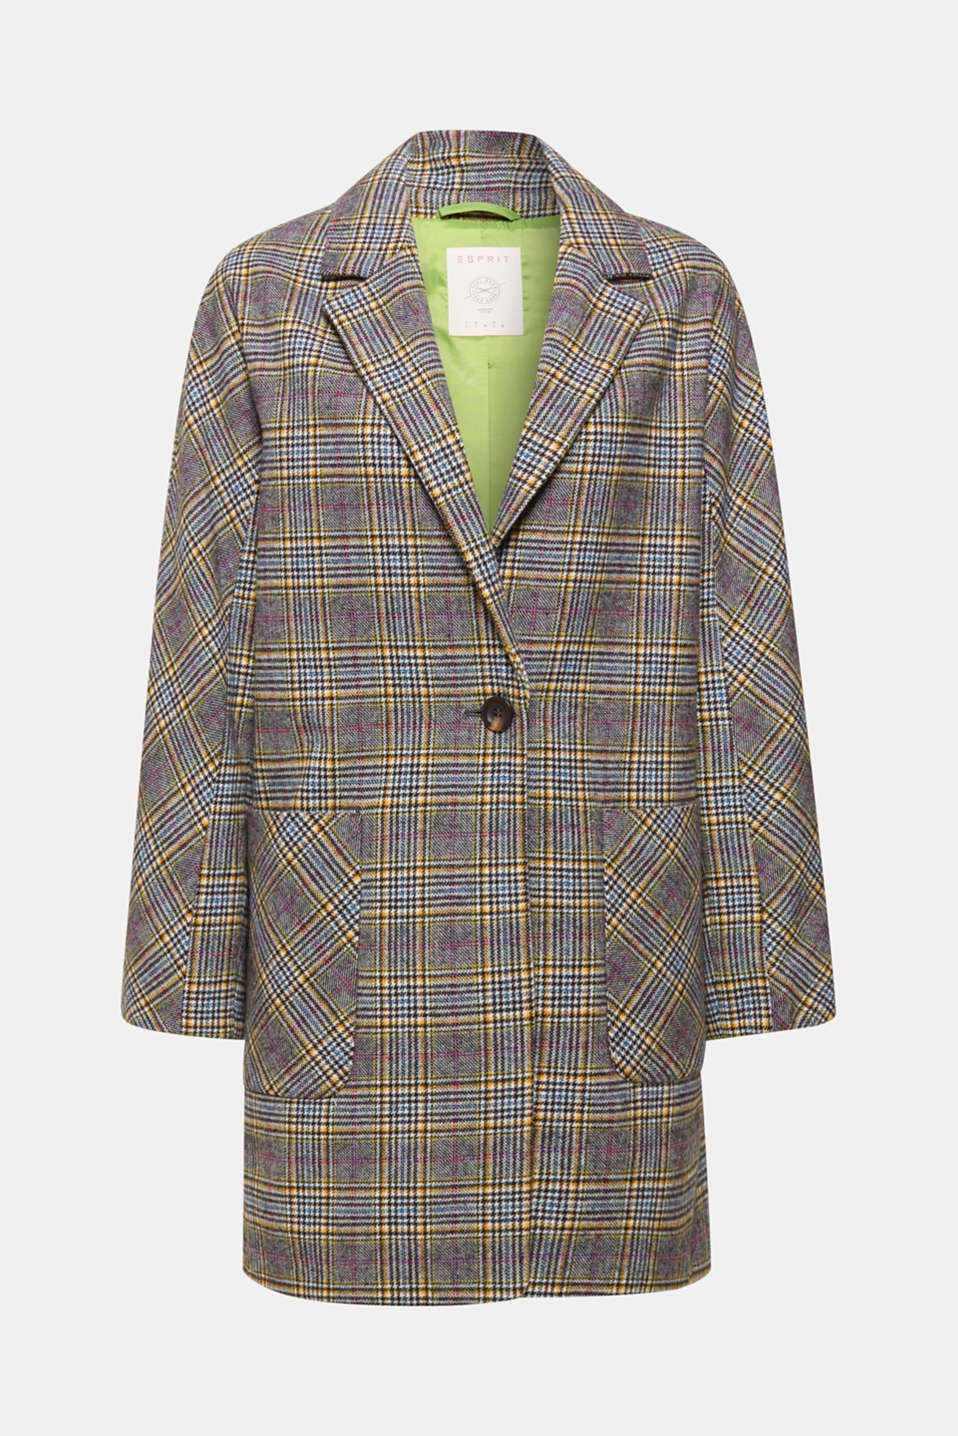 Must-have: This casual oversized coat in warm blended wool with a bright Prince of Wales check and large pockets is a great fashion piece for the first days of autumn!